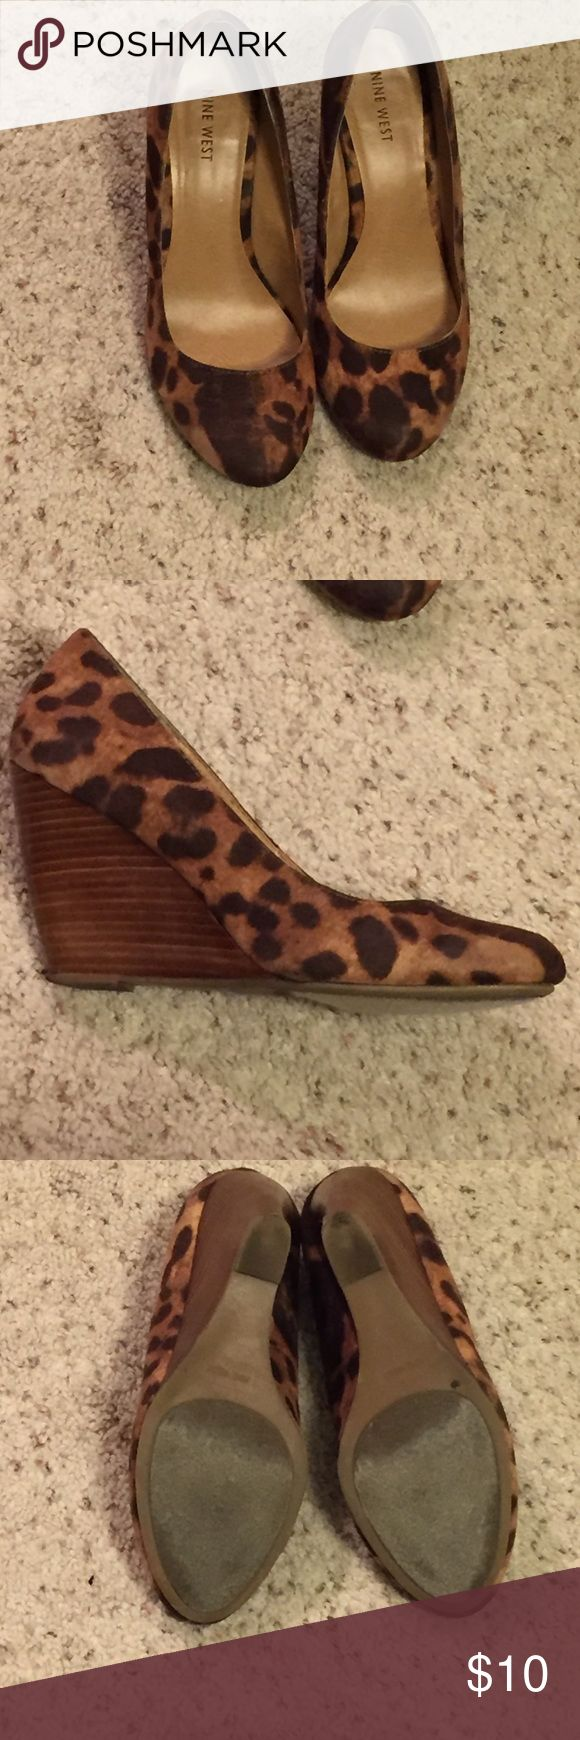 Leopard wedges Leopard print wedge heels . Gently worn, signs of wear on the heel; about 3 inches Nine West Shoes Wedges